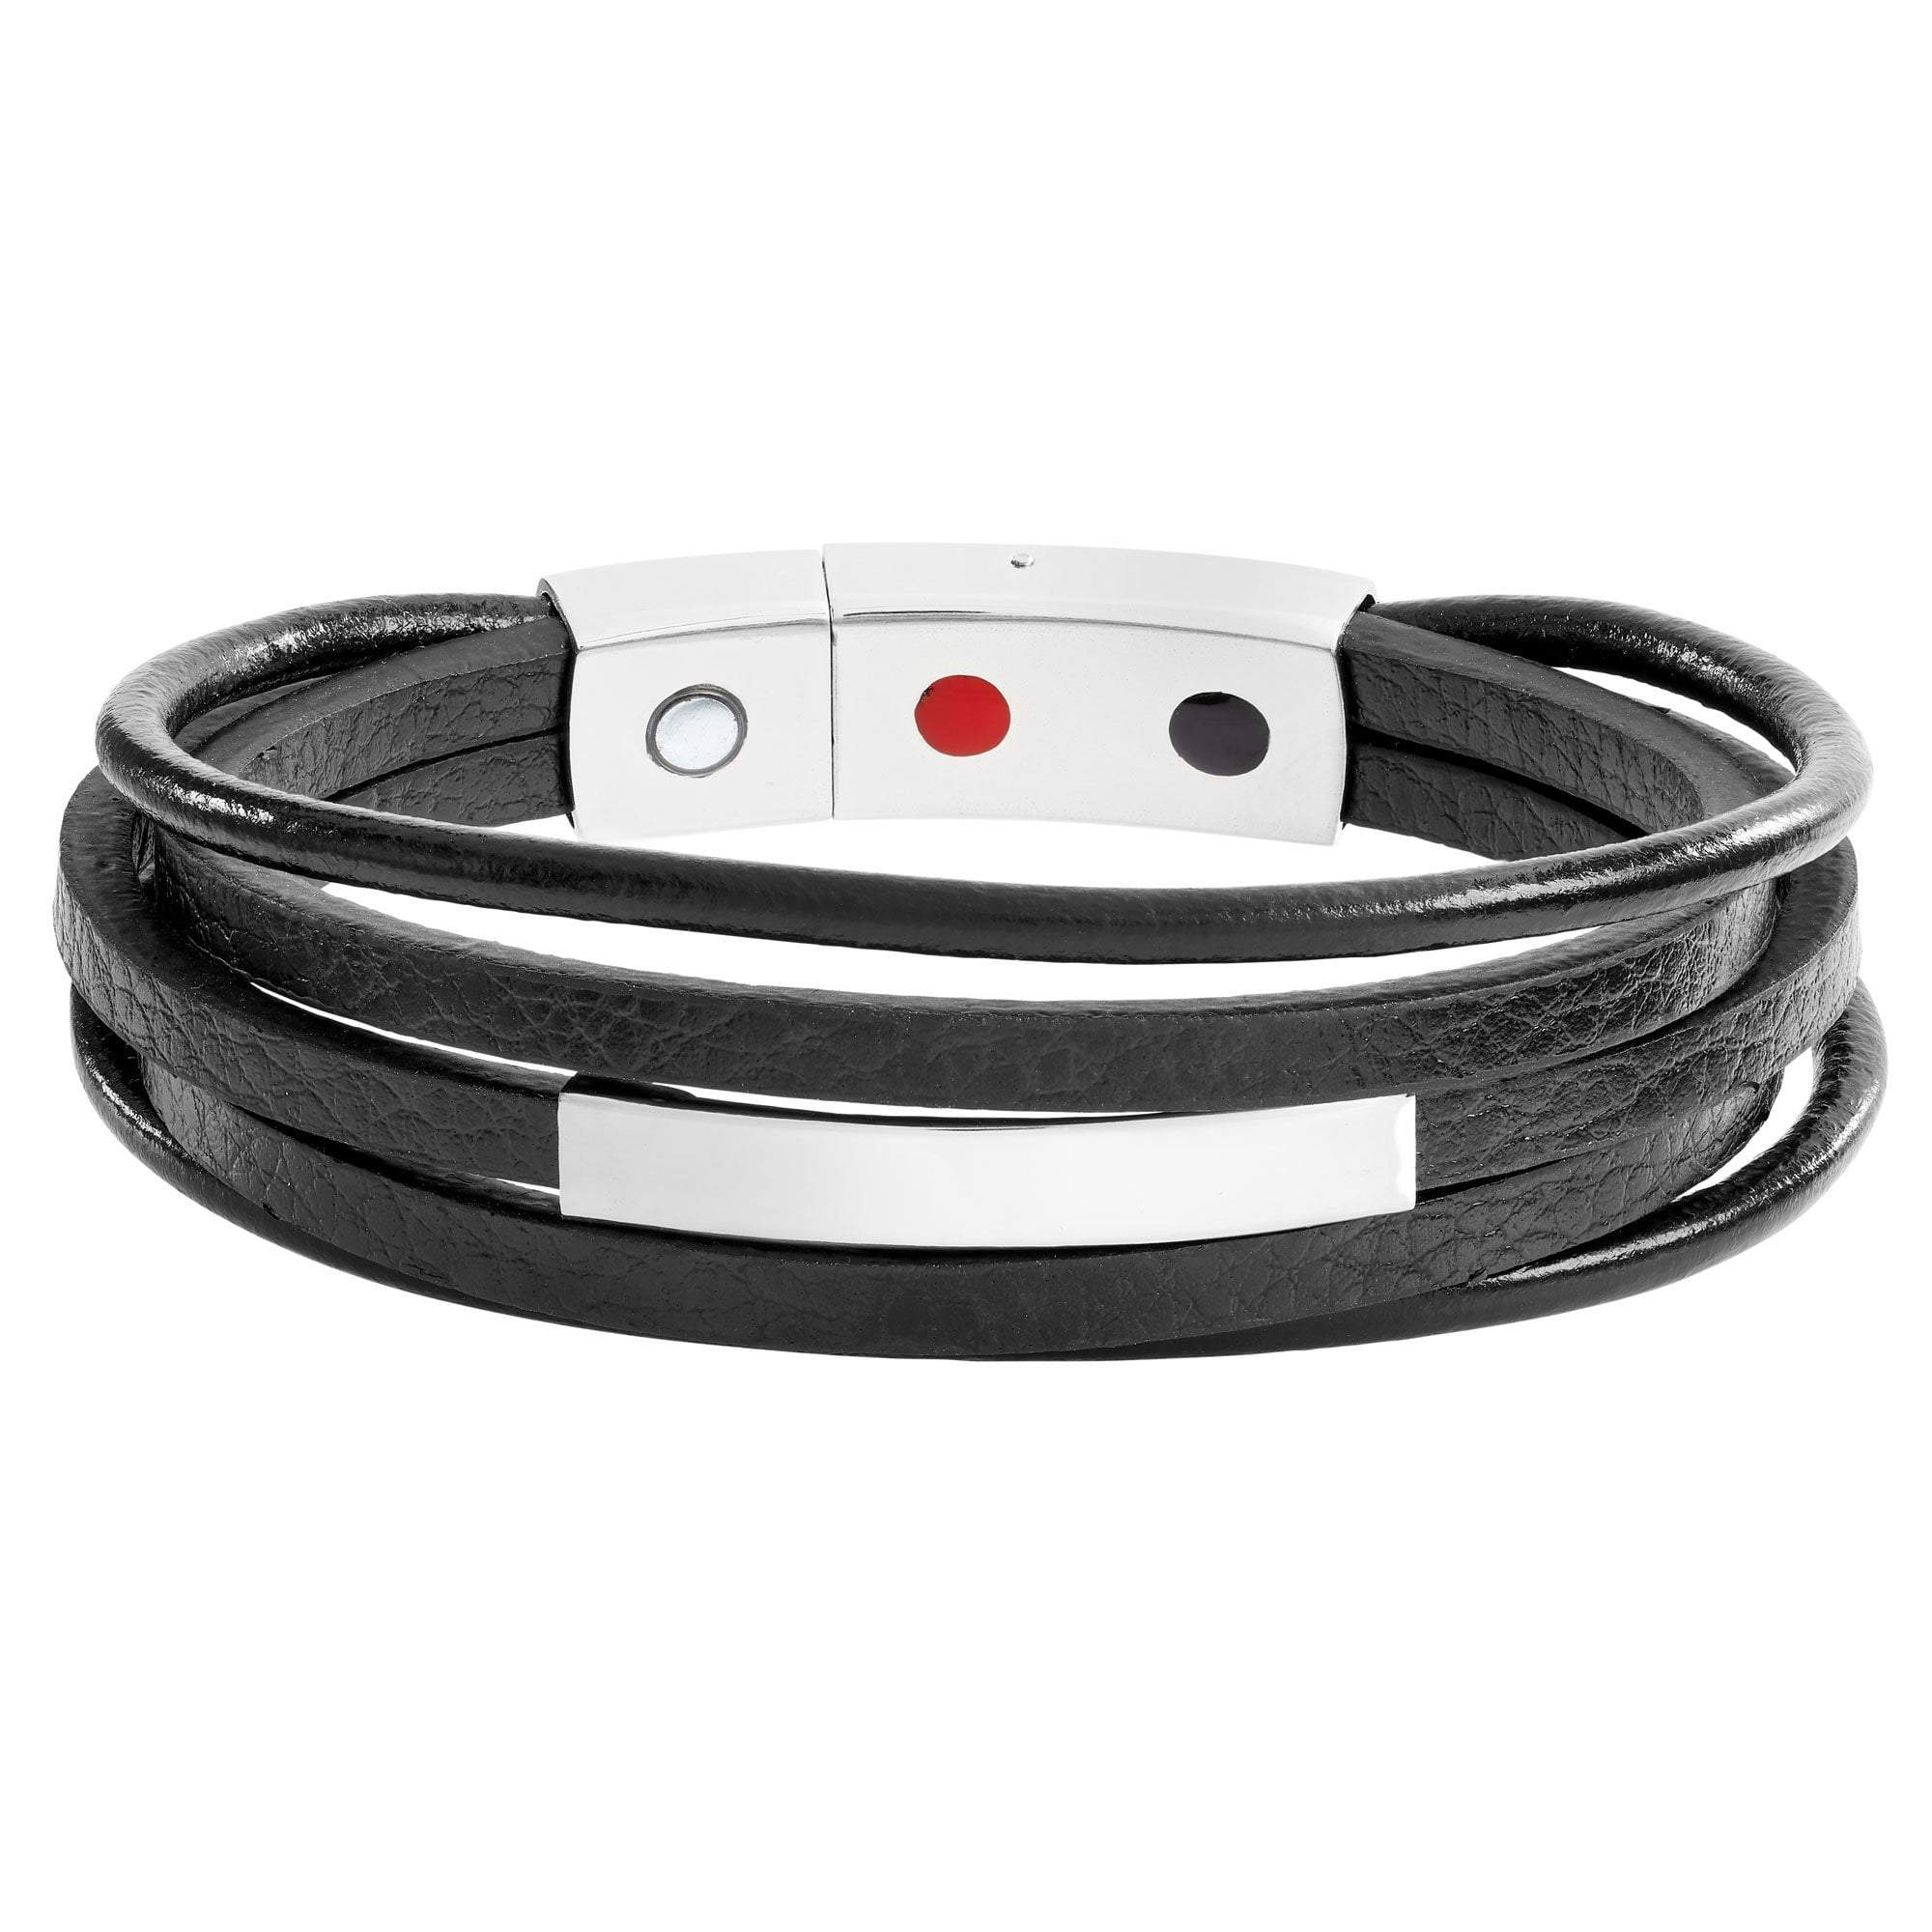 Leather Magnetic Bracelet S (16cm) Black Magnetic Leather Wrap Health Bracelet